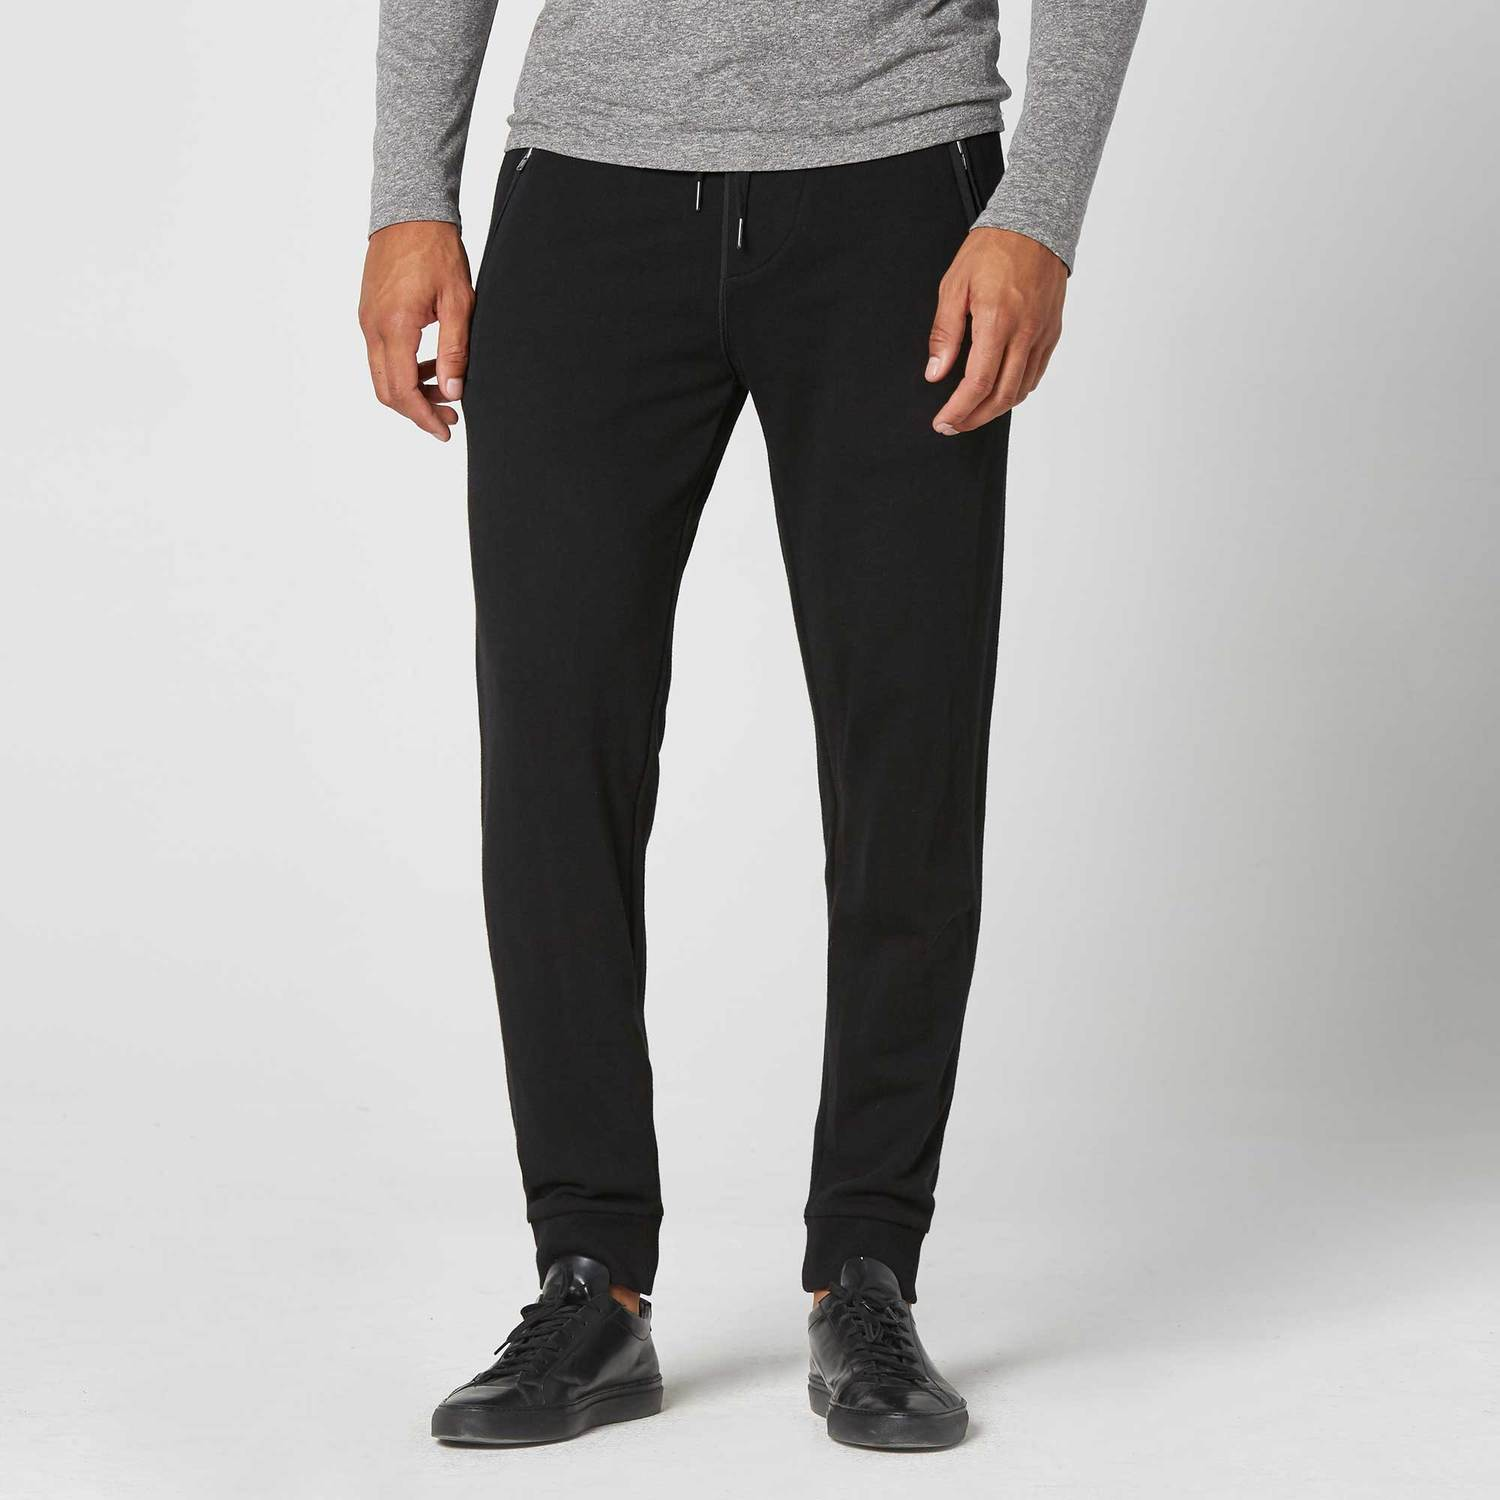 Mens Jogger Pants In Black by Dstld